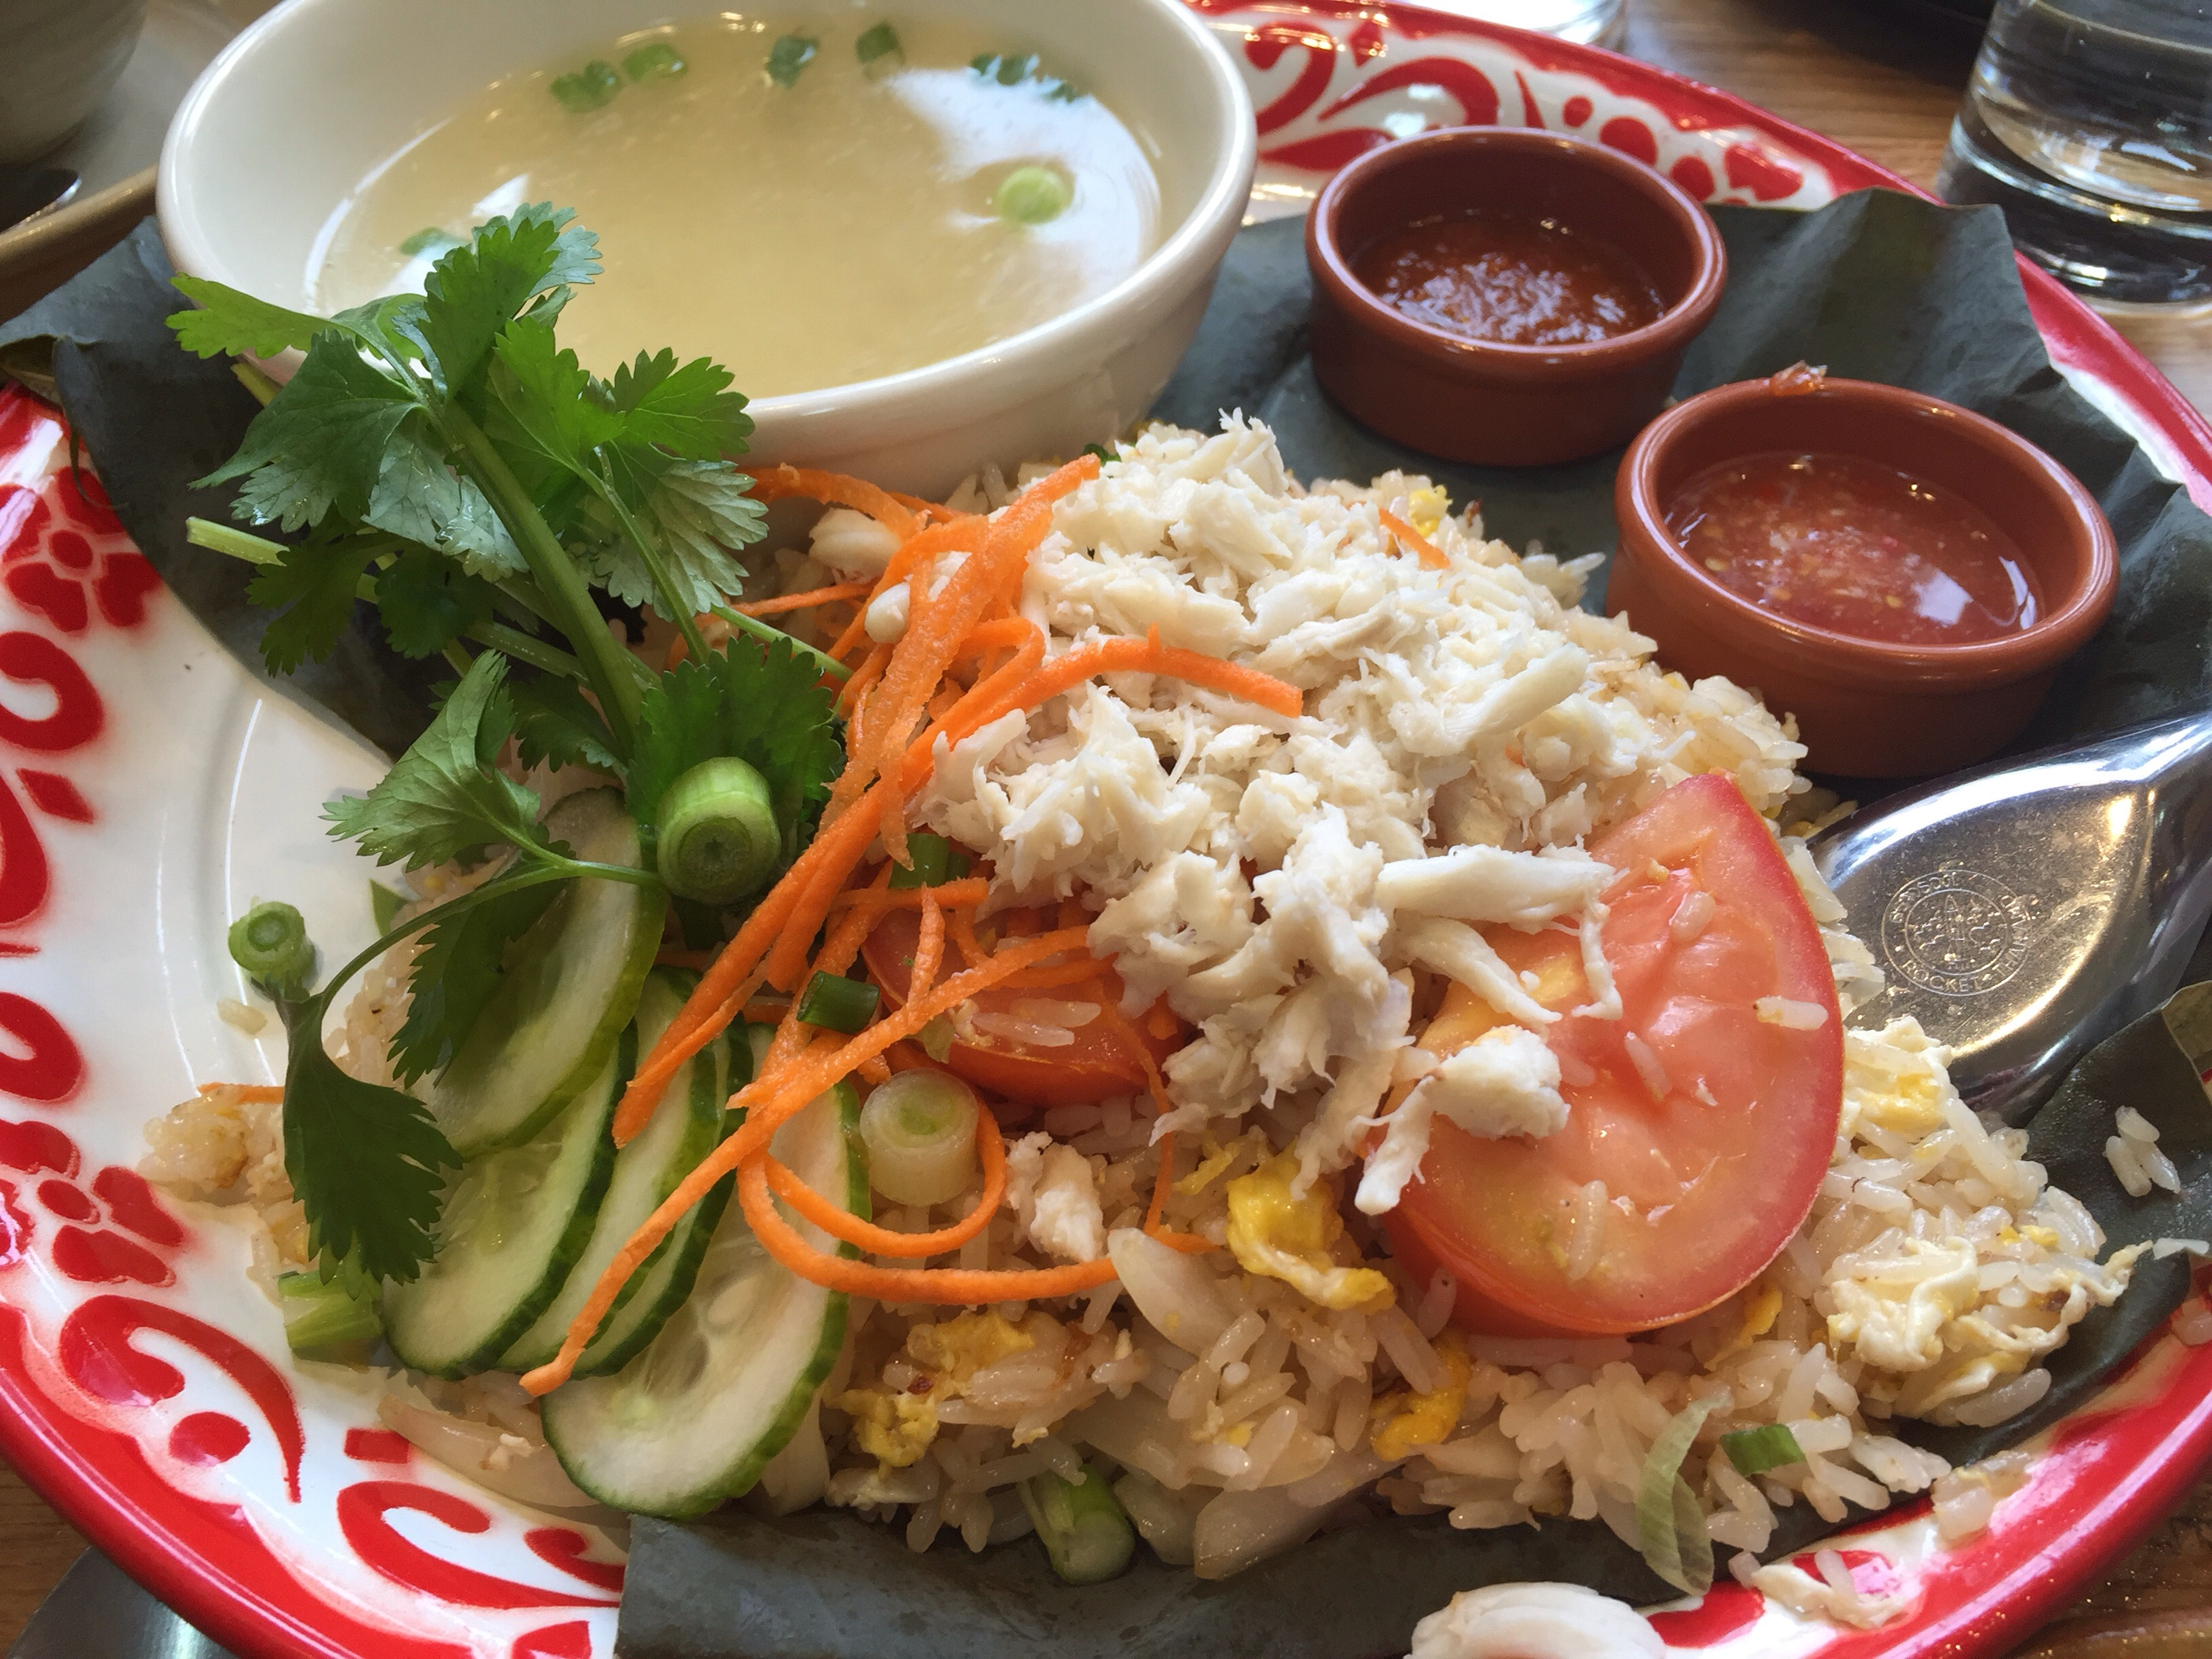 Crab fried rice 510foodie if you enjoy thai food make your way to daughter thai in montclair village they have some of the best and authentic thai food in the bay area ccuart Images